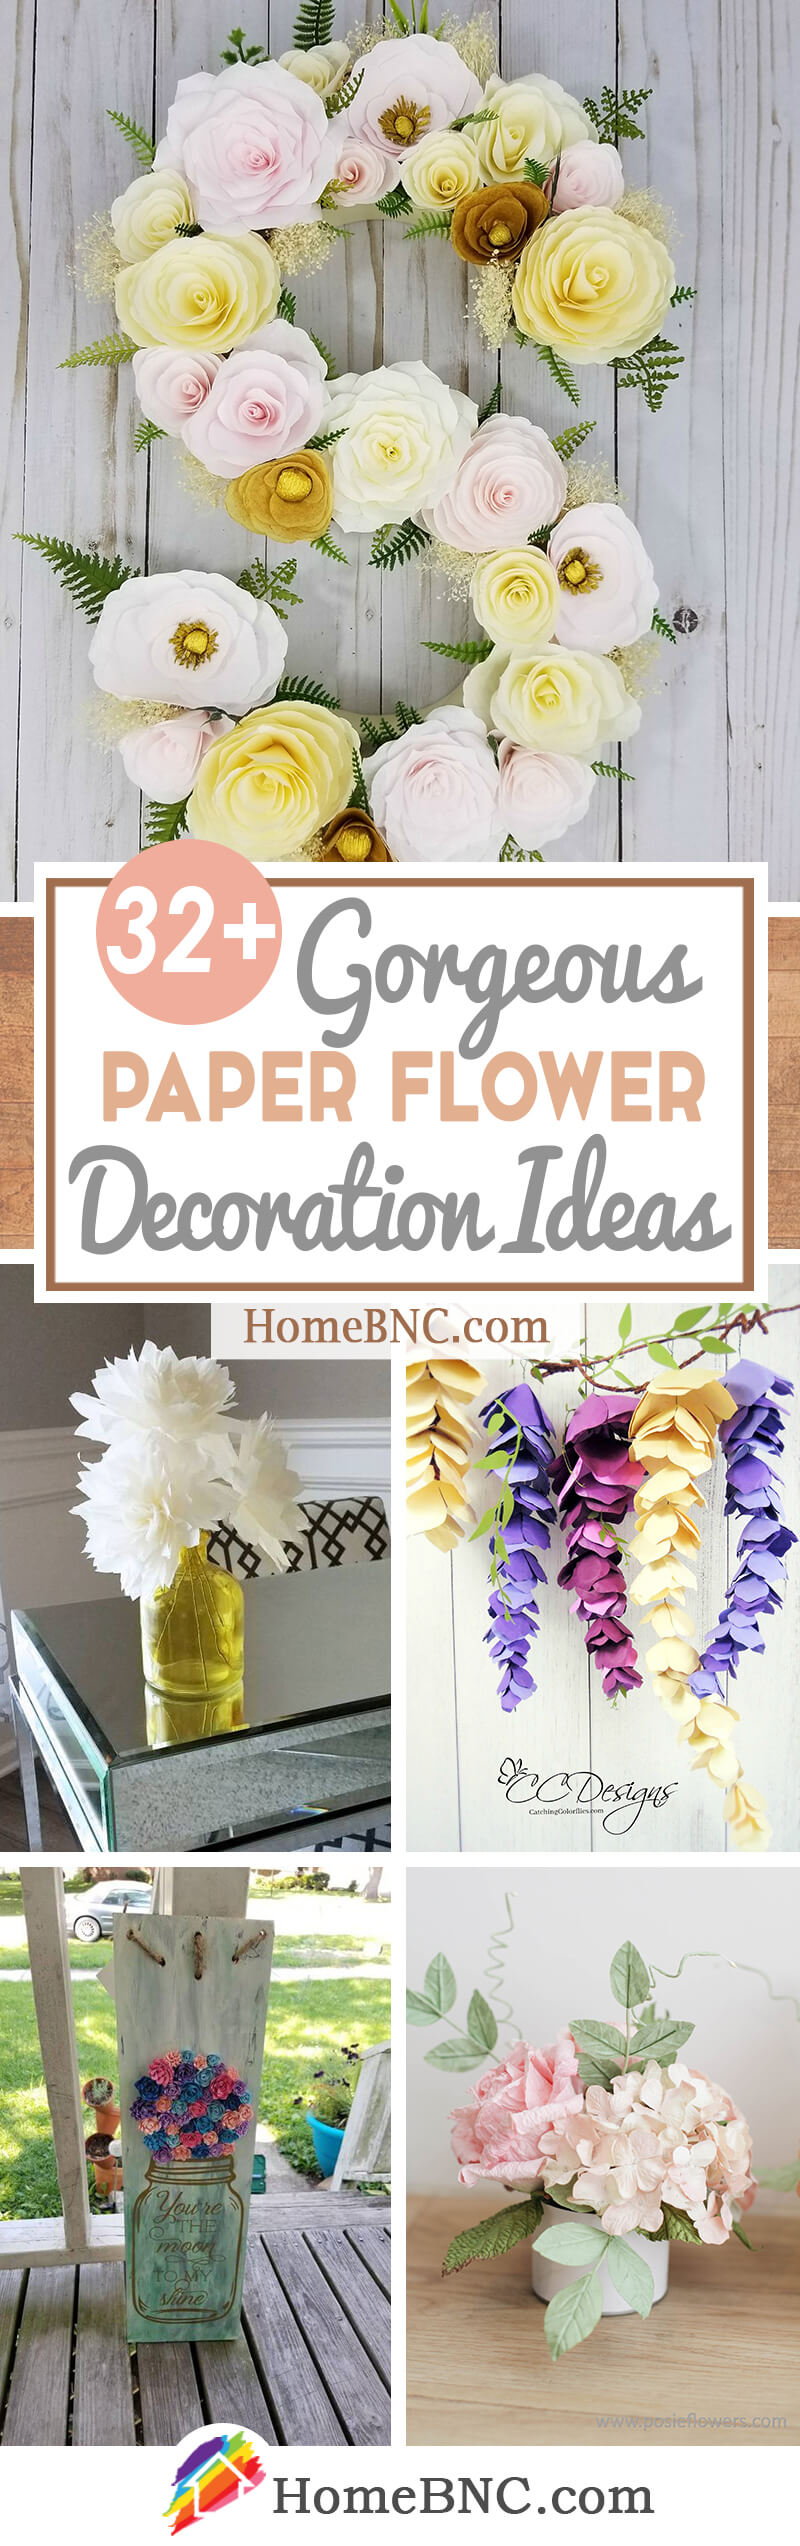 Paper Flower Decoration Ideas